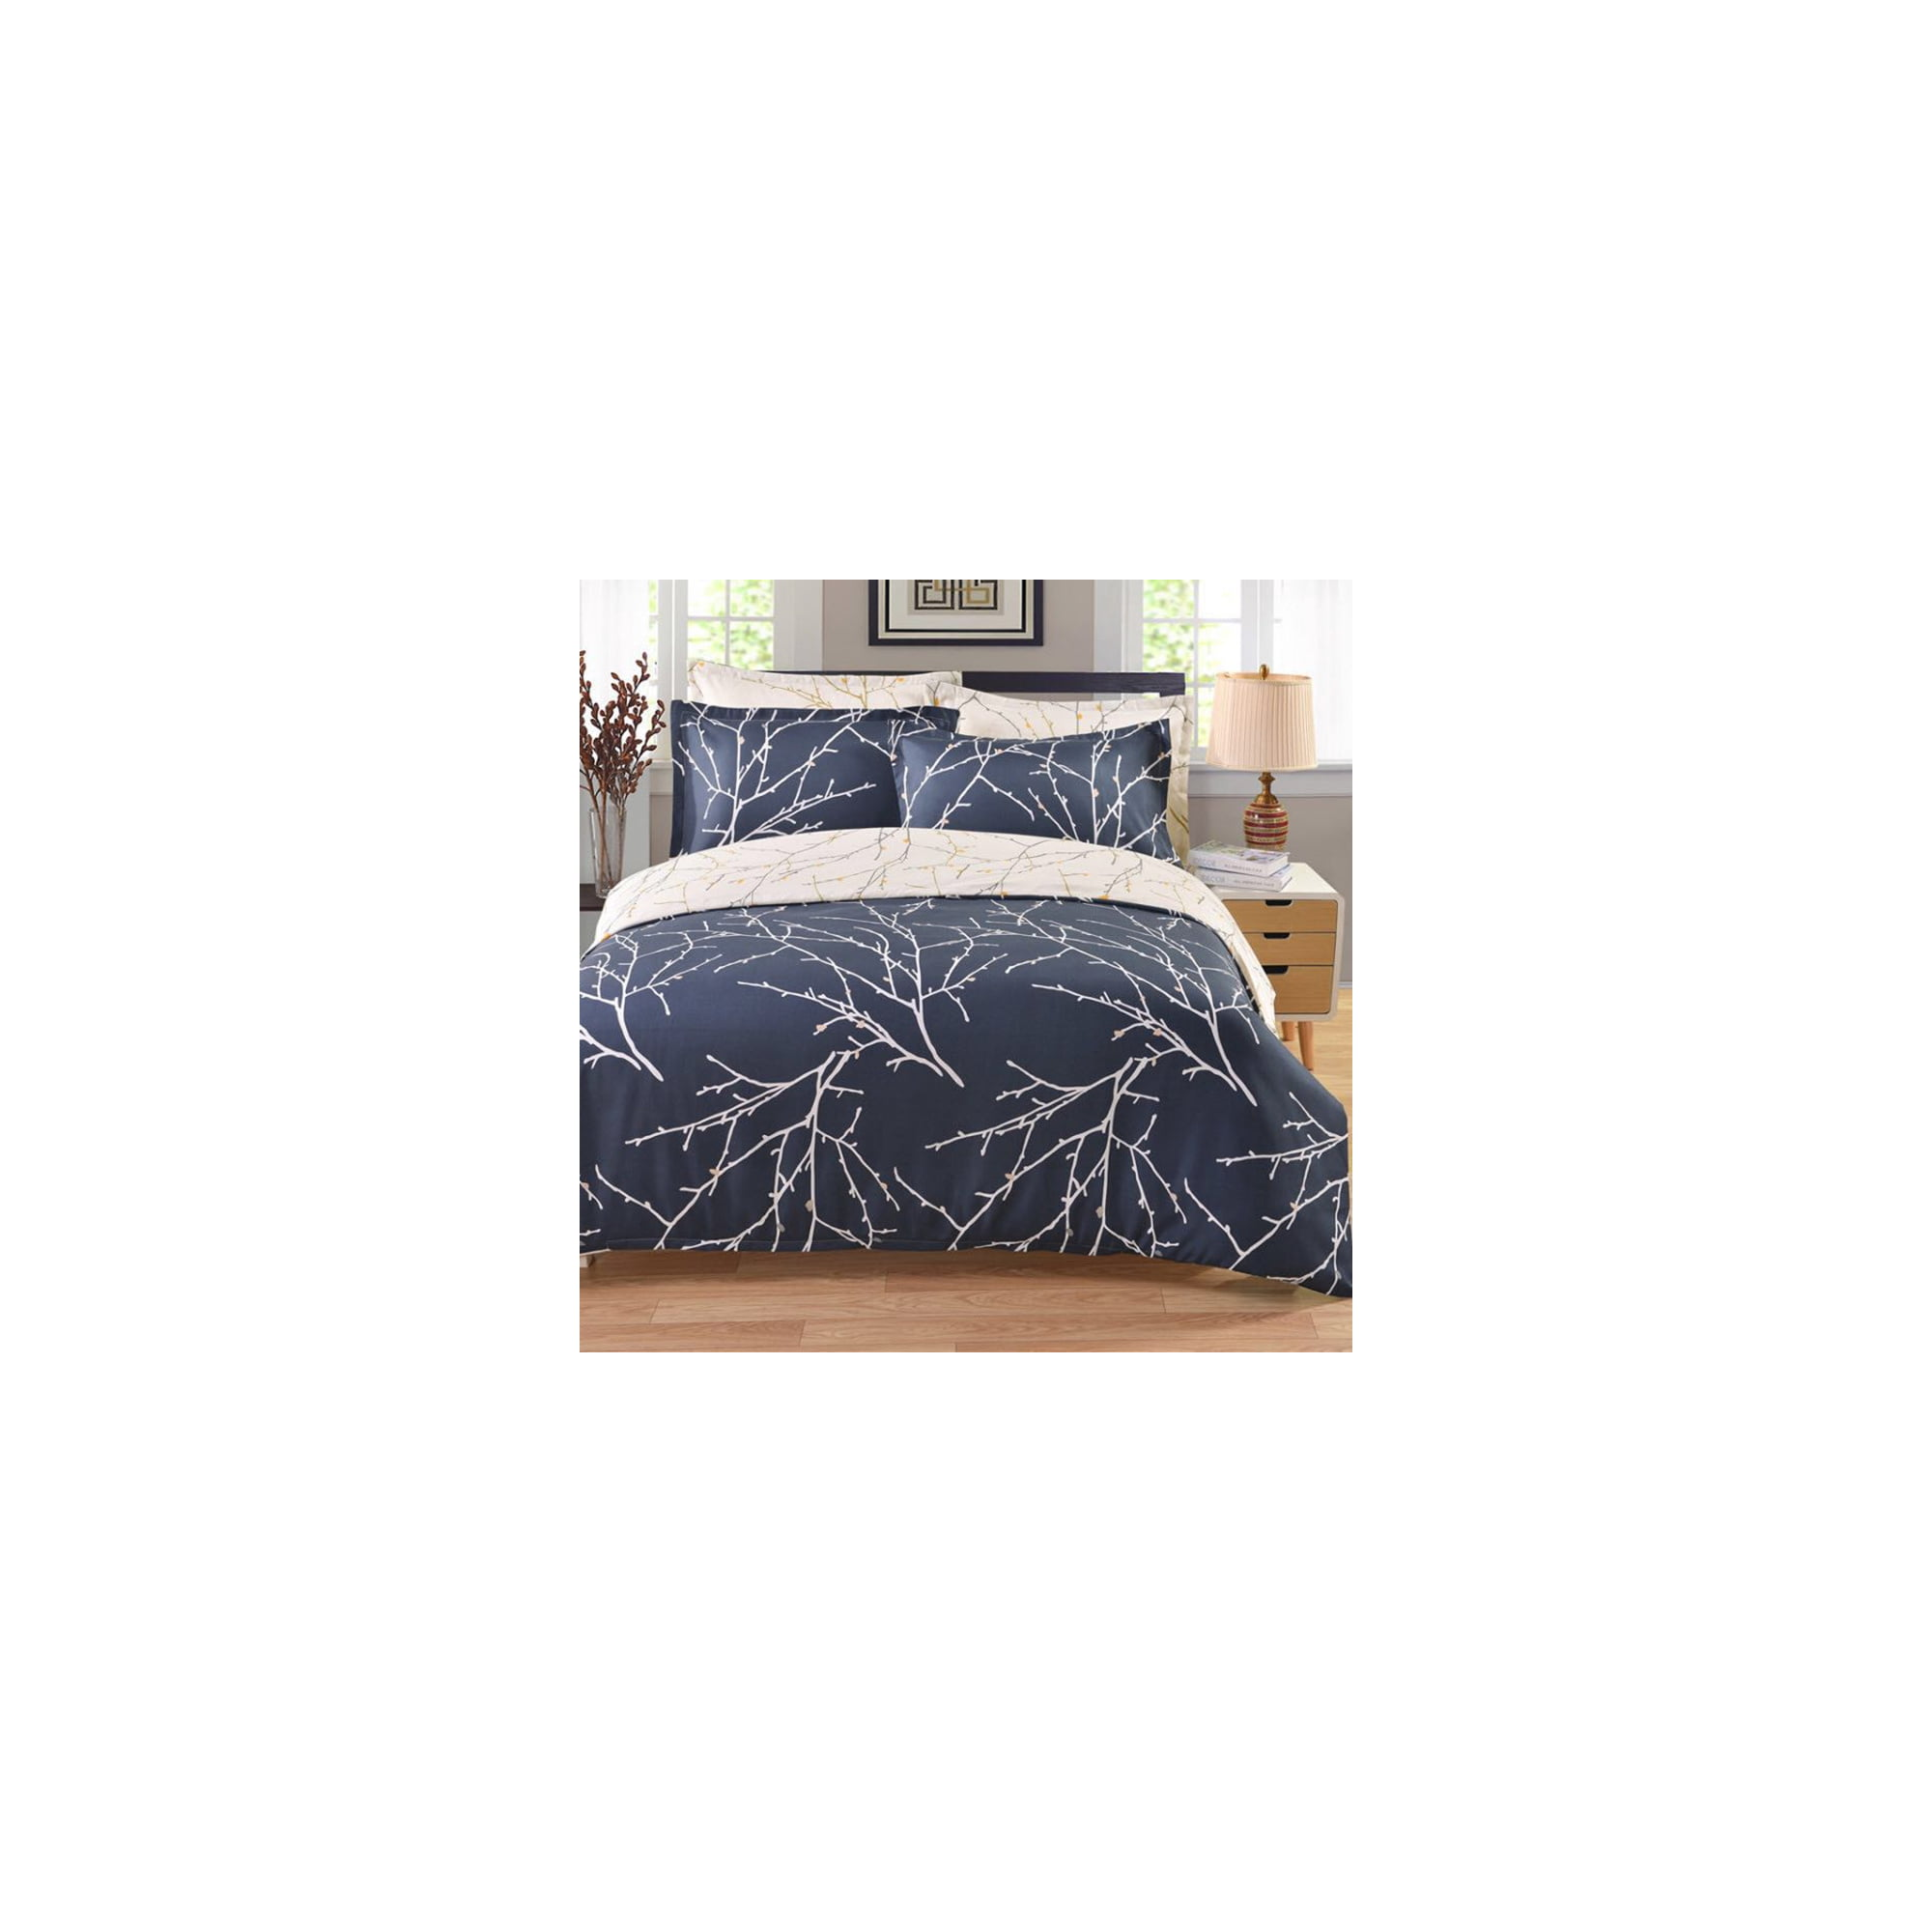 Closure Navy Blue Ivory Printed Tree Branch Pattern Reversible Bedding Duvet Cover Set Soft Microfiber Breathable Comfortable With Zipper Closure Walmart Canada